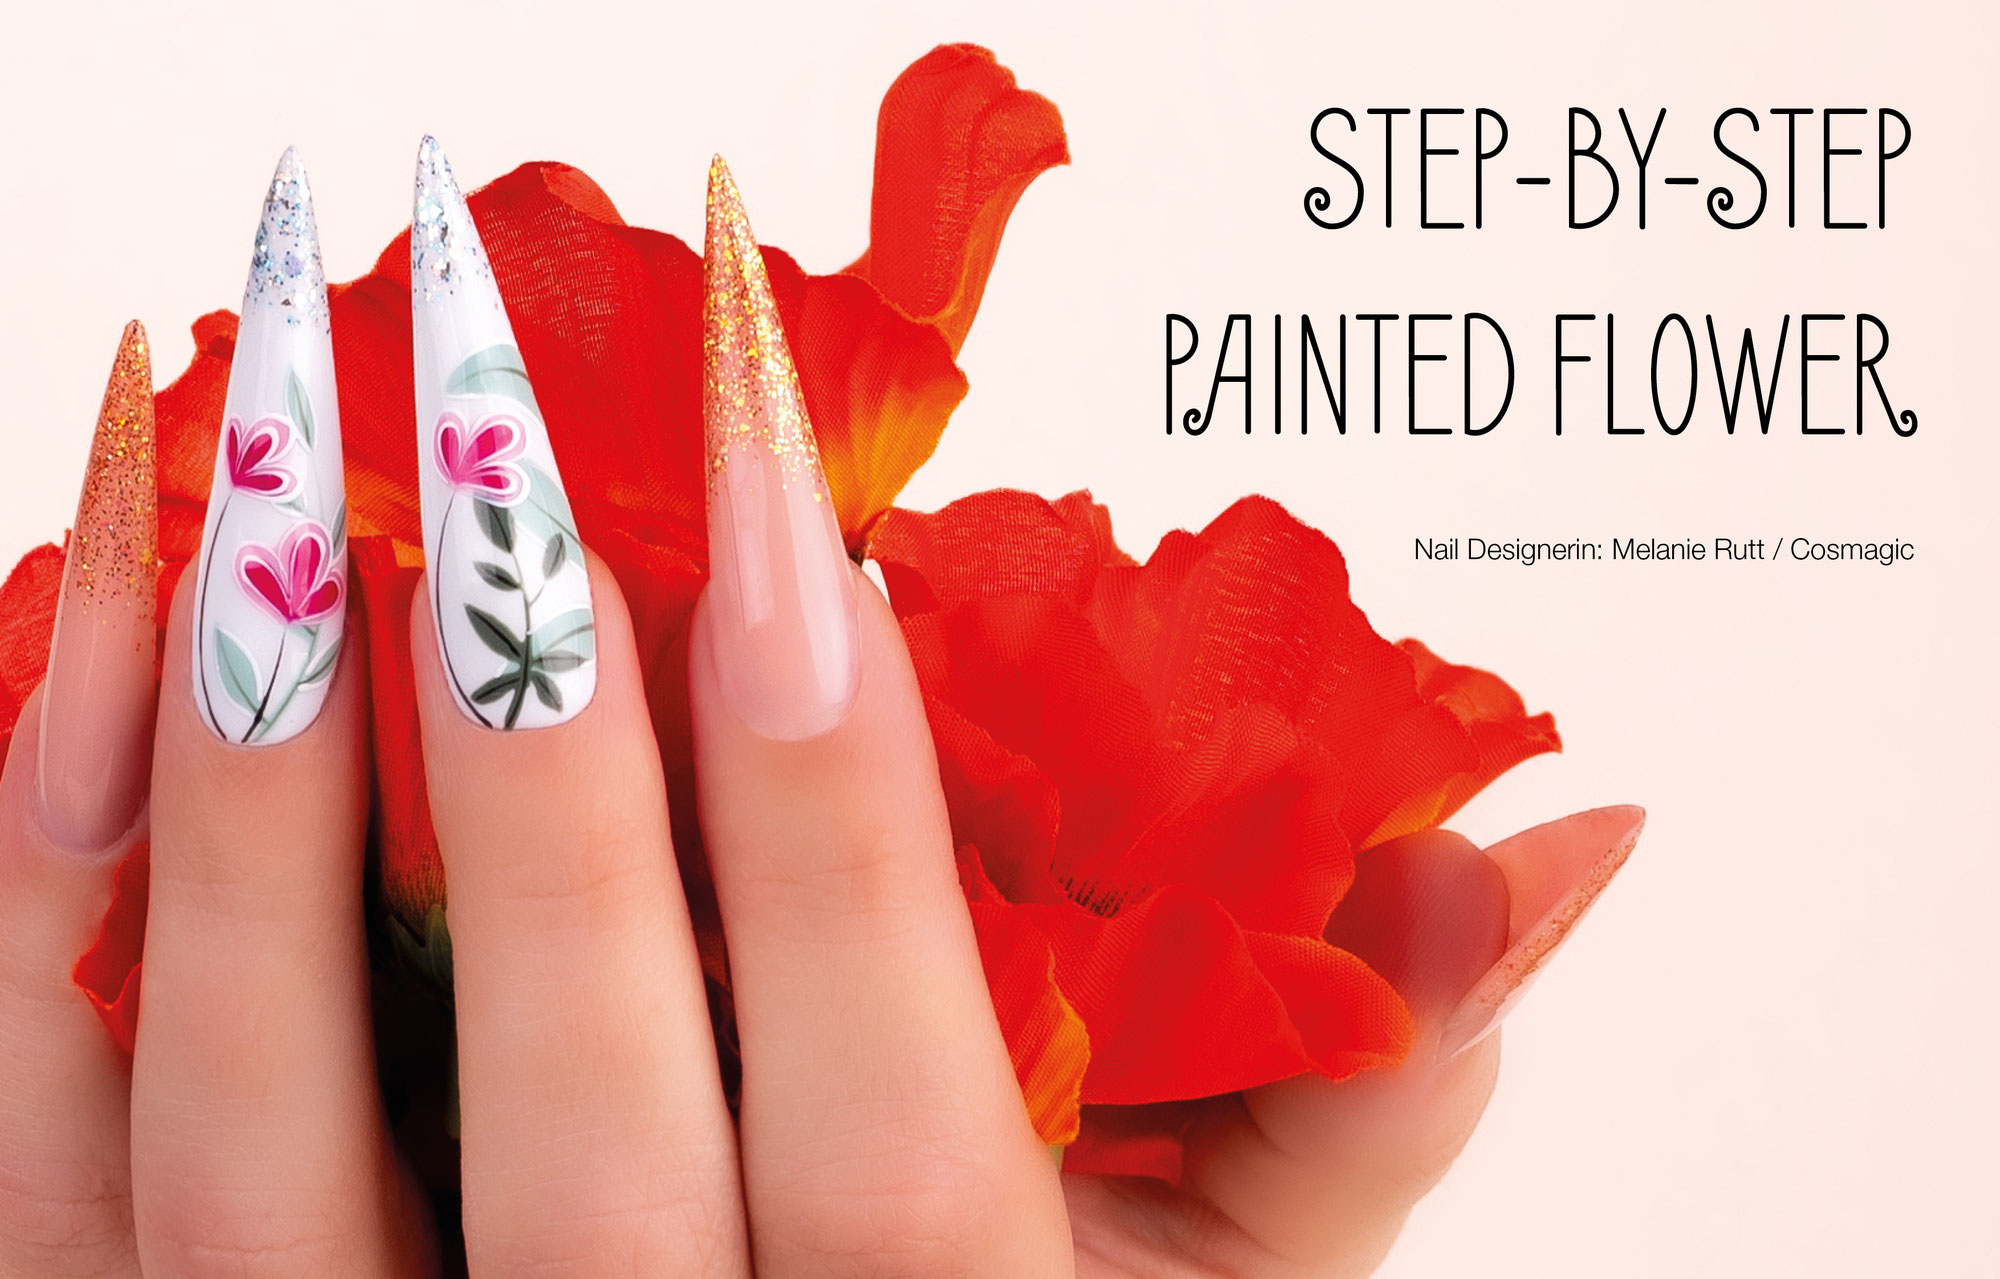 Nail Art Painted Flower